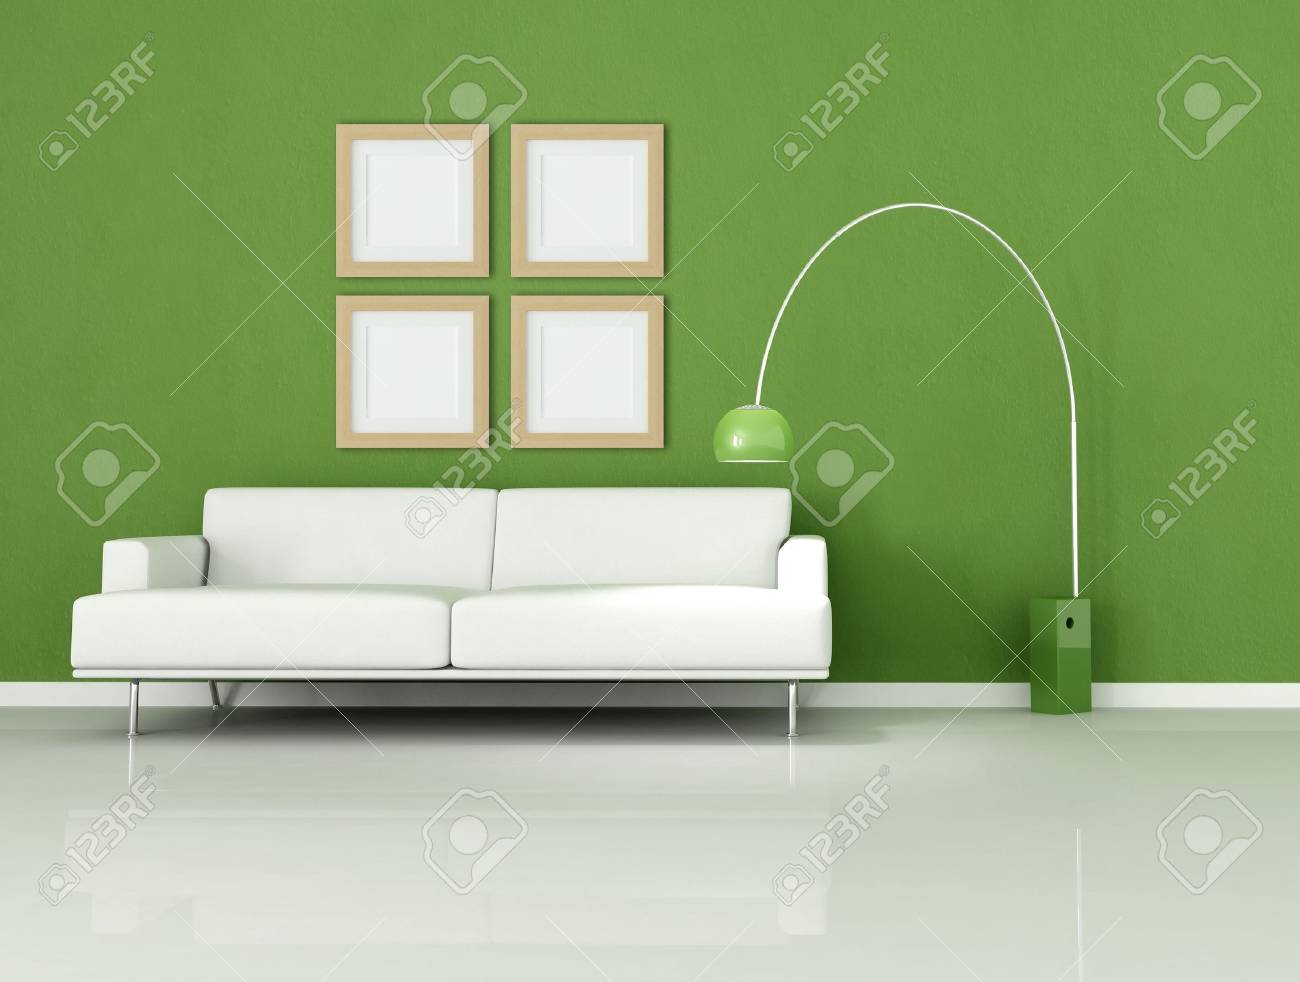 White Sofa In A Minimal Green Room Stock Photo   5131284